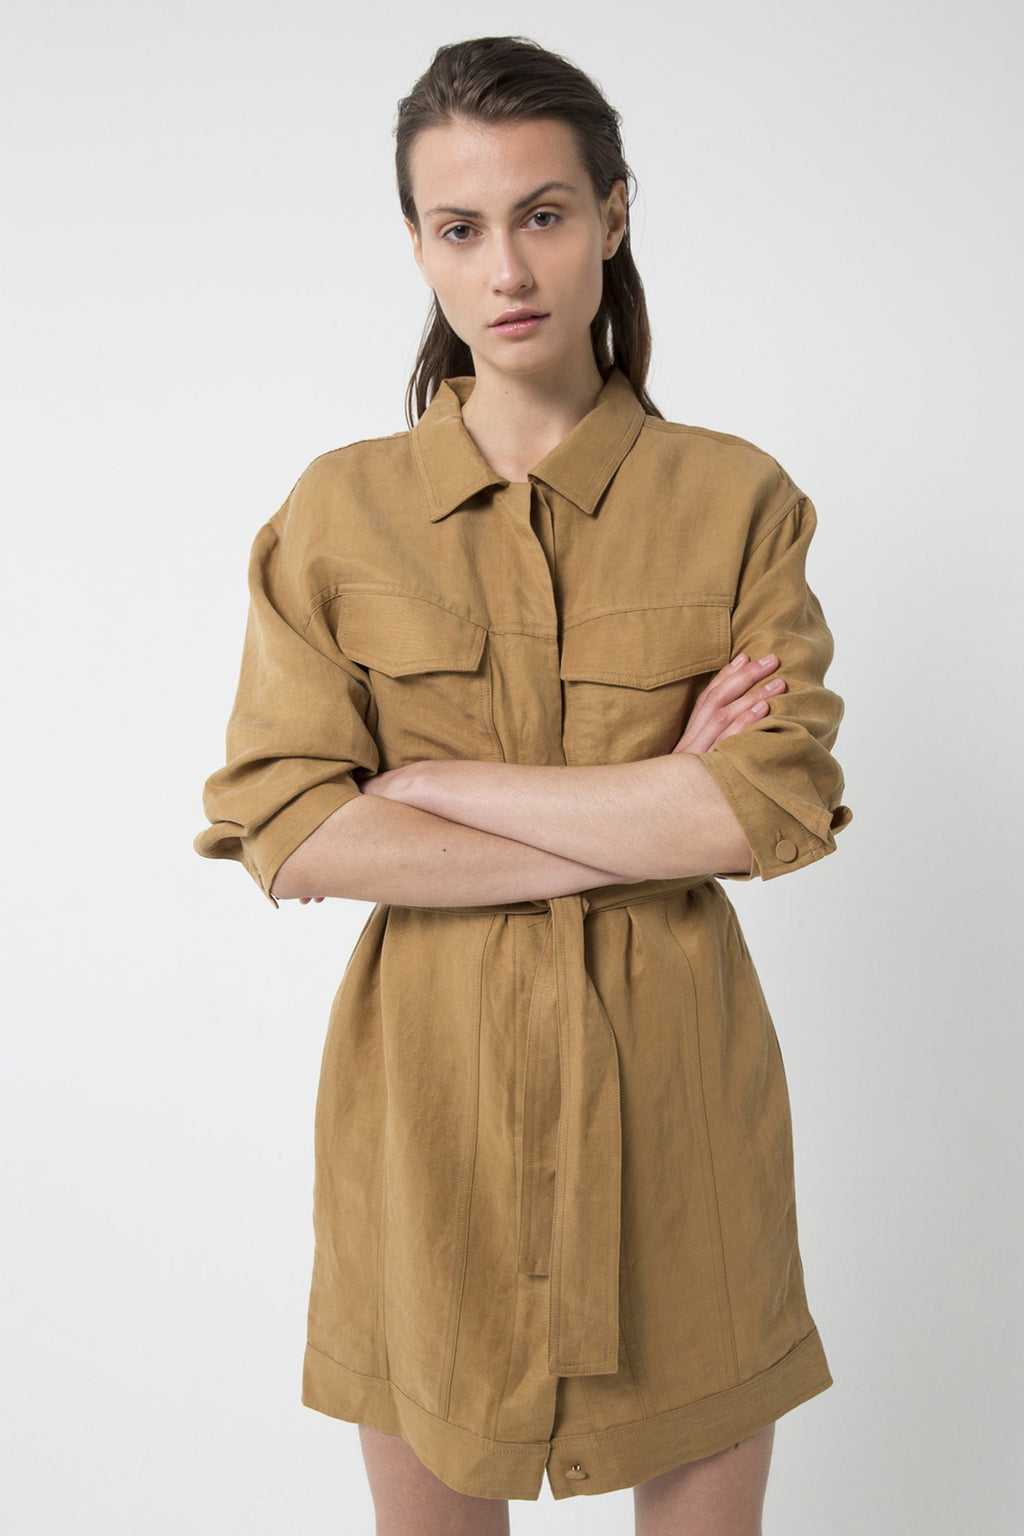 Third Form Trucker Jacket Dress